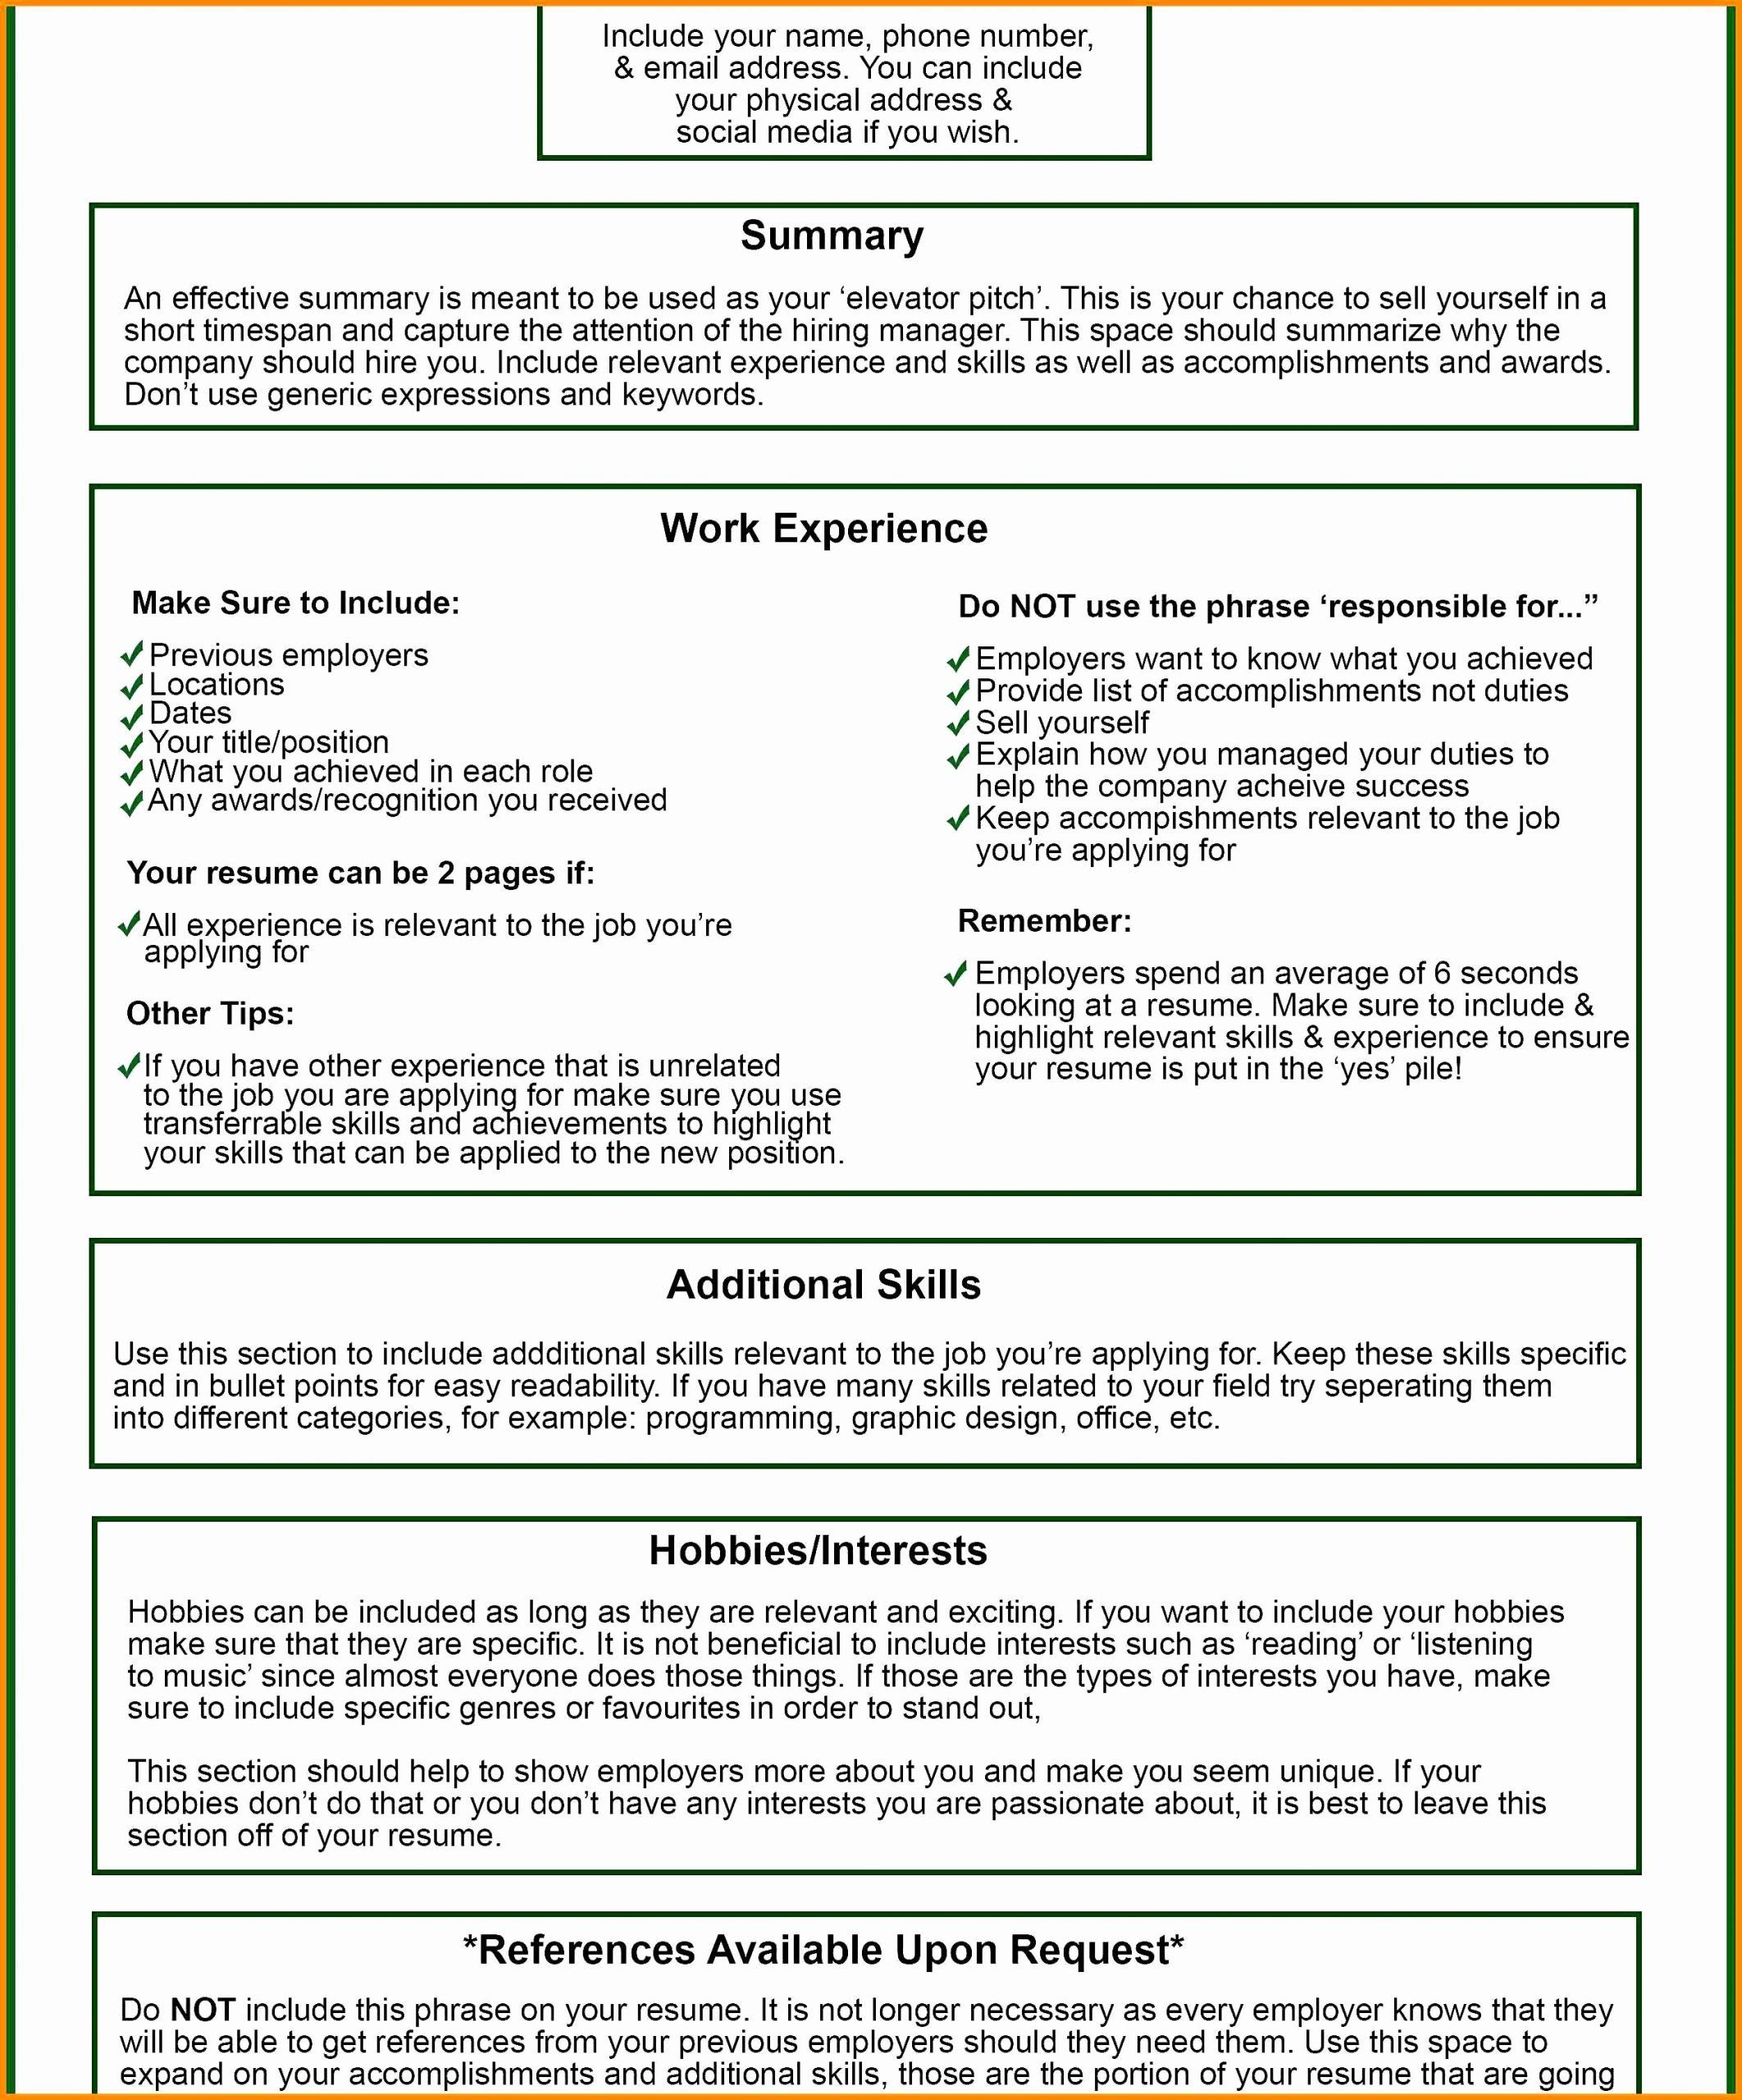 Template for Letter Of Interest Luxury Resumes Hobbies and